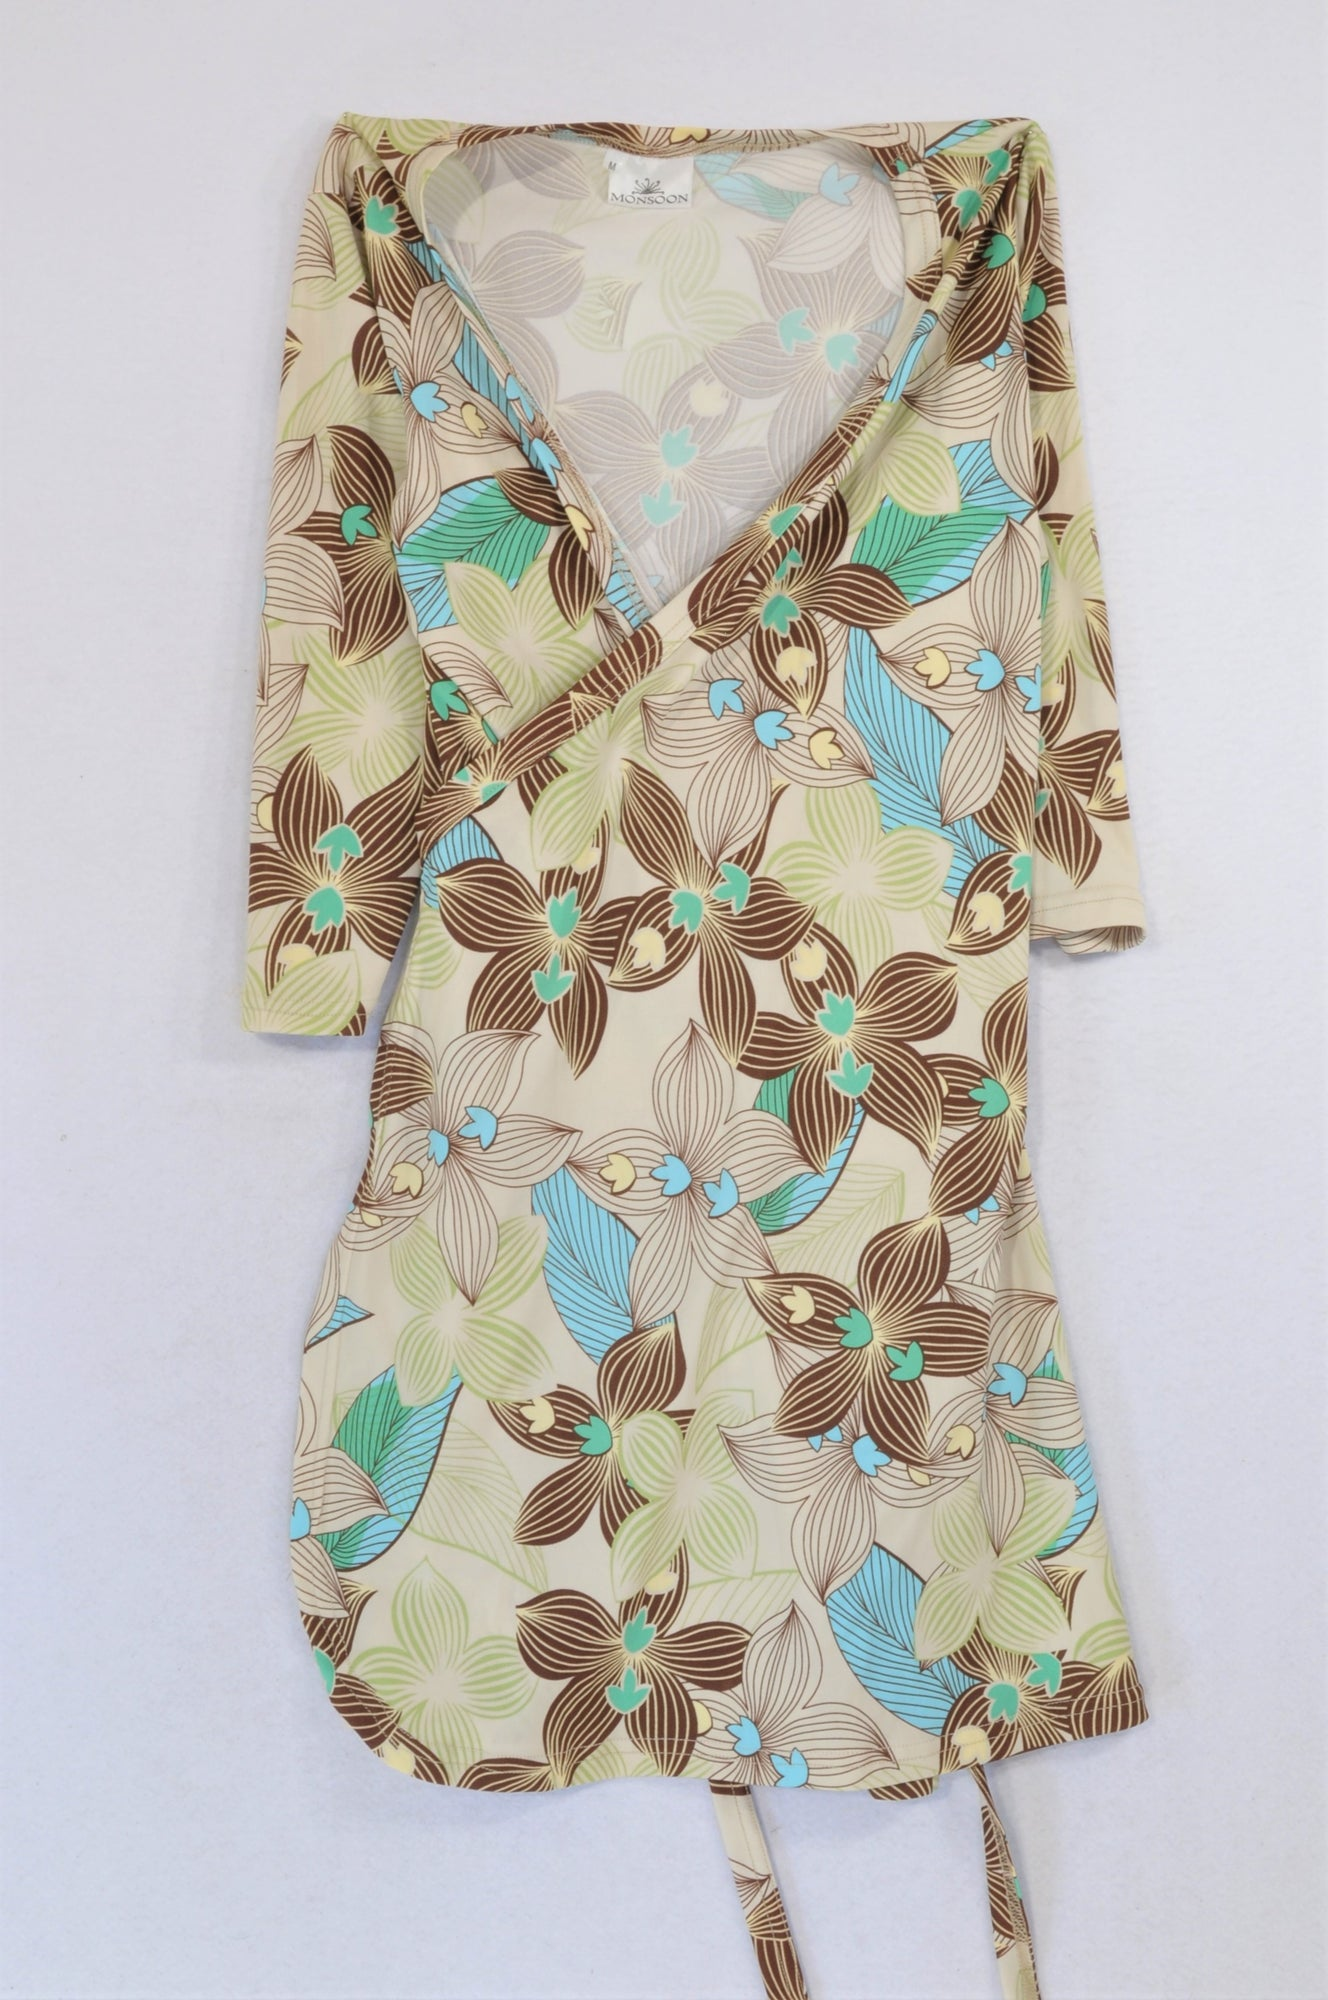 Monsoon Brown & Green Leaf Tie Wrap Top Women Size M